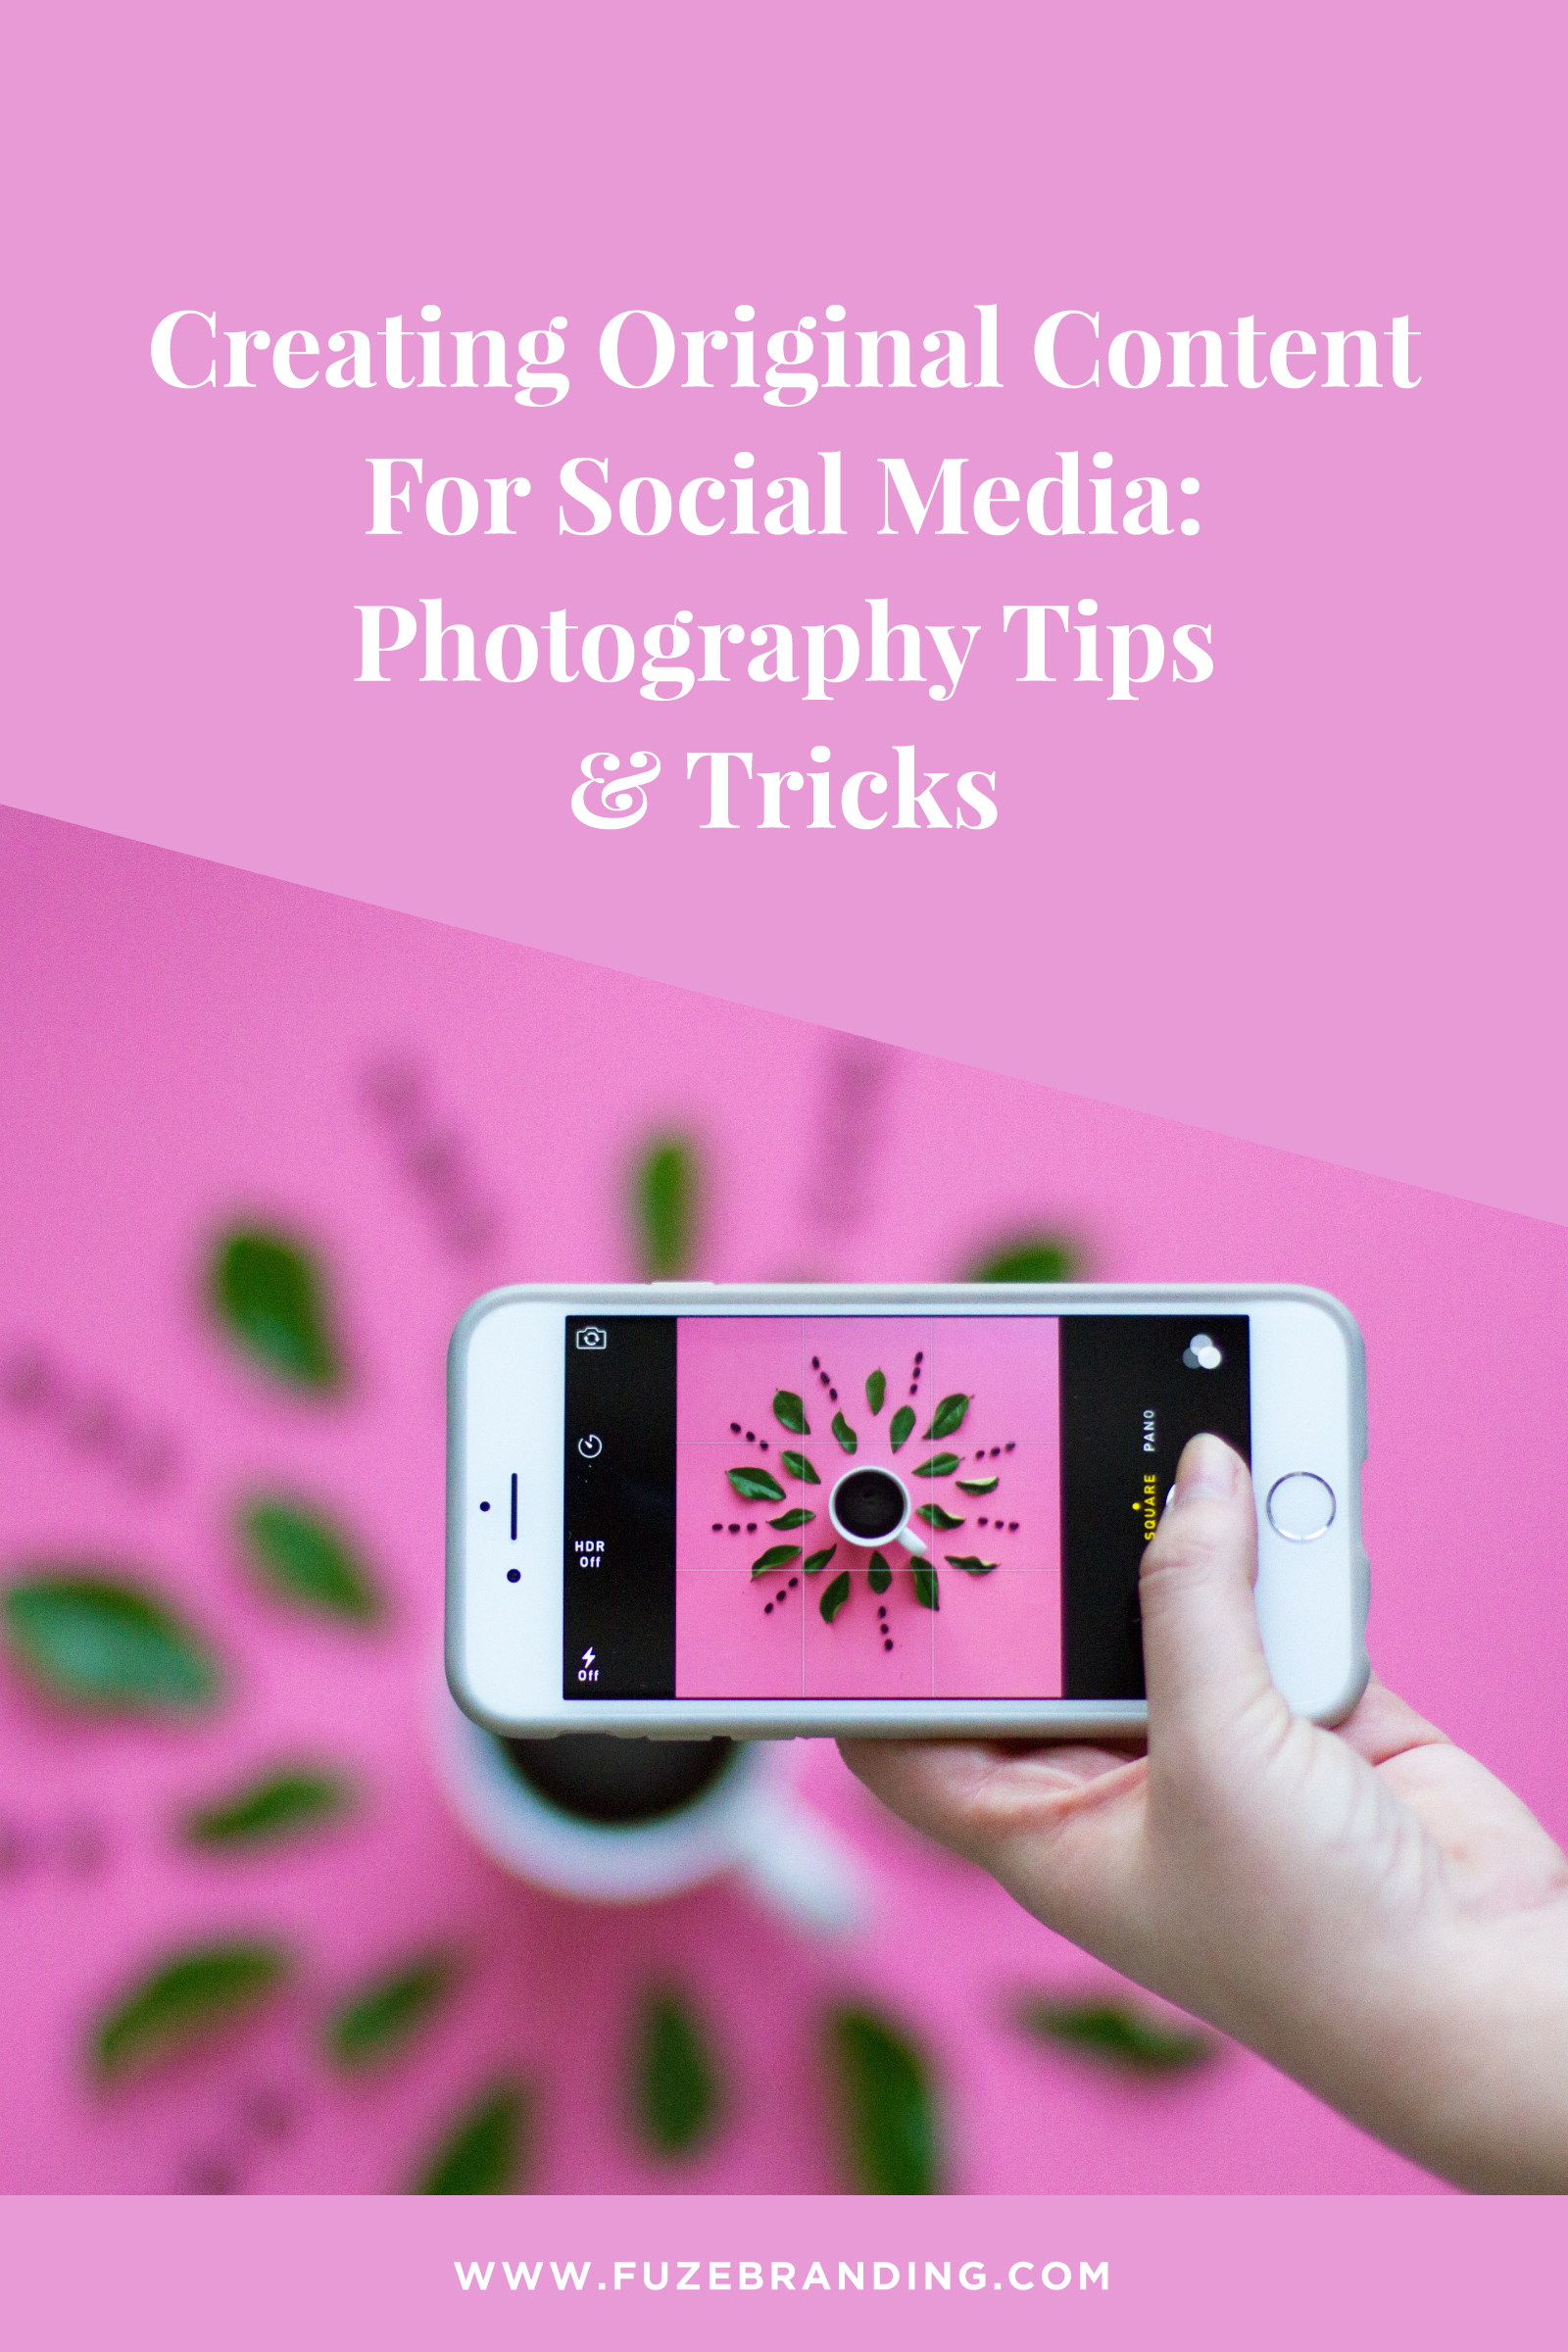 20 Amazing Photography Tips and Techniques